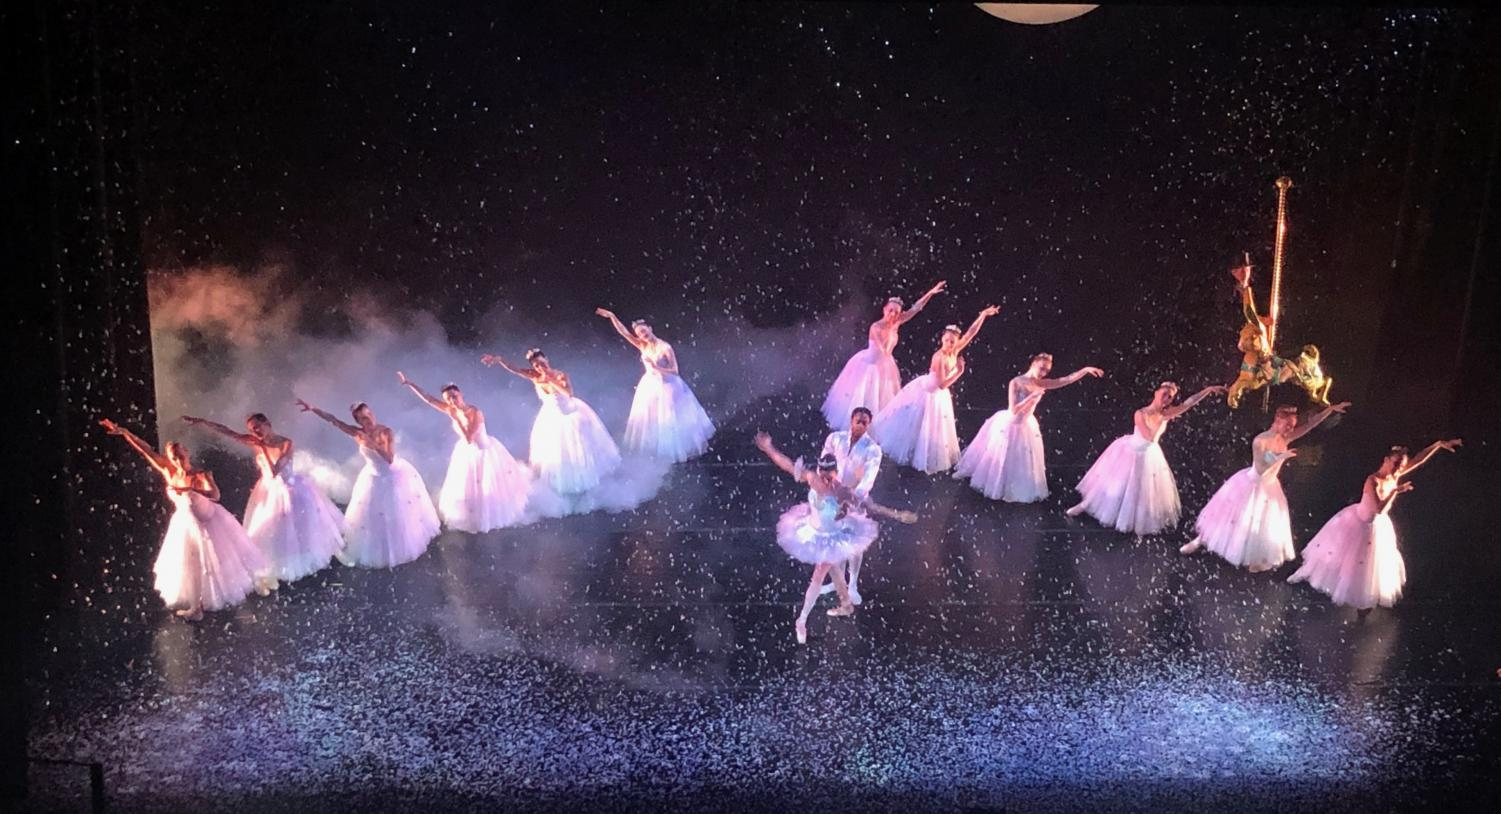 Fake snow falls to create a magical scene as dancers perform the Sugar Plum dance.